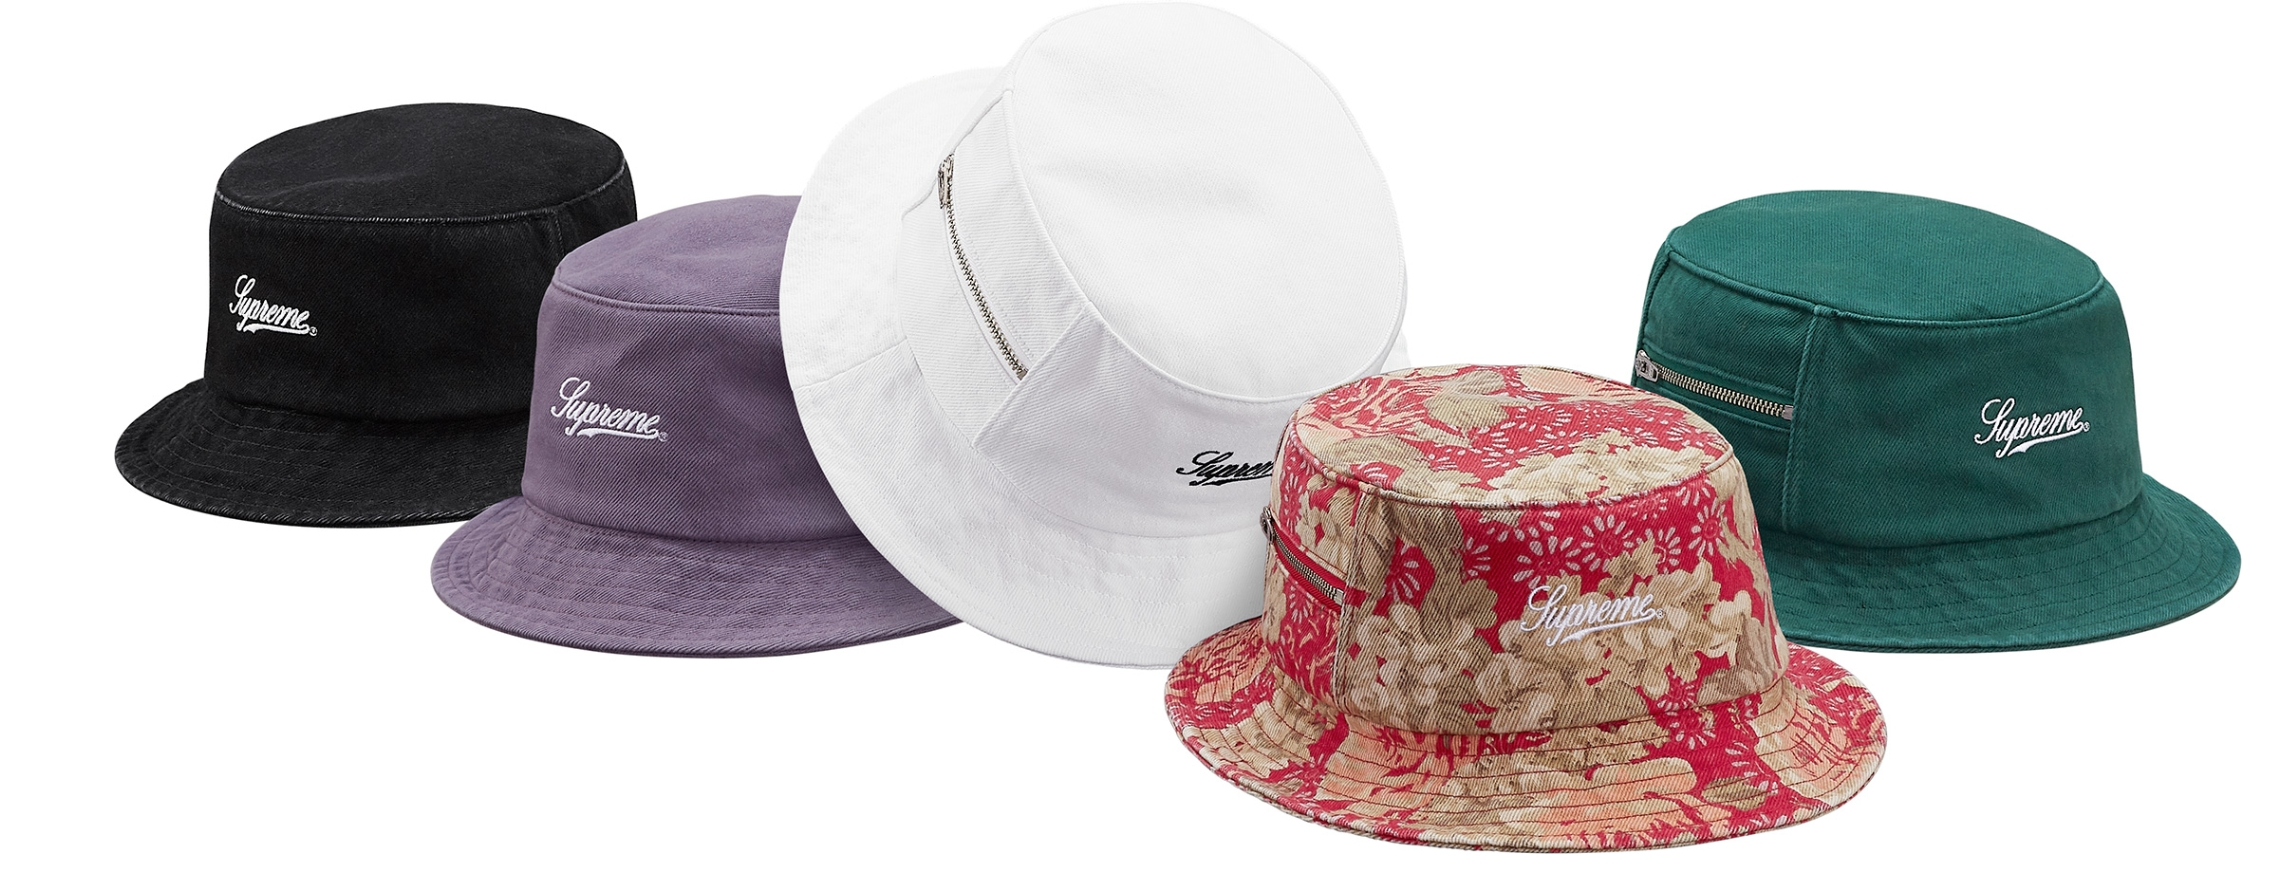 7b1f71b17265b The 50 Best Supreme Hats Of All Time